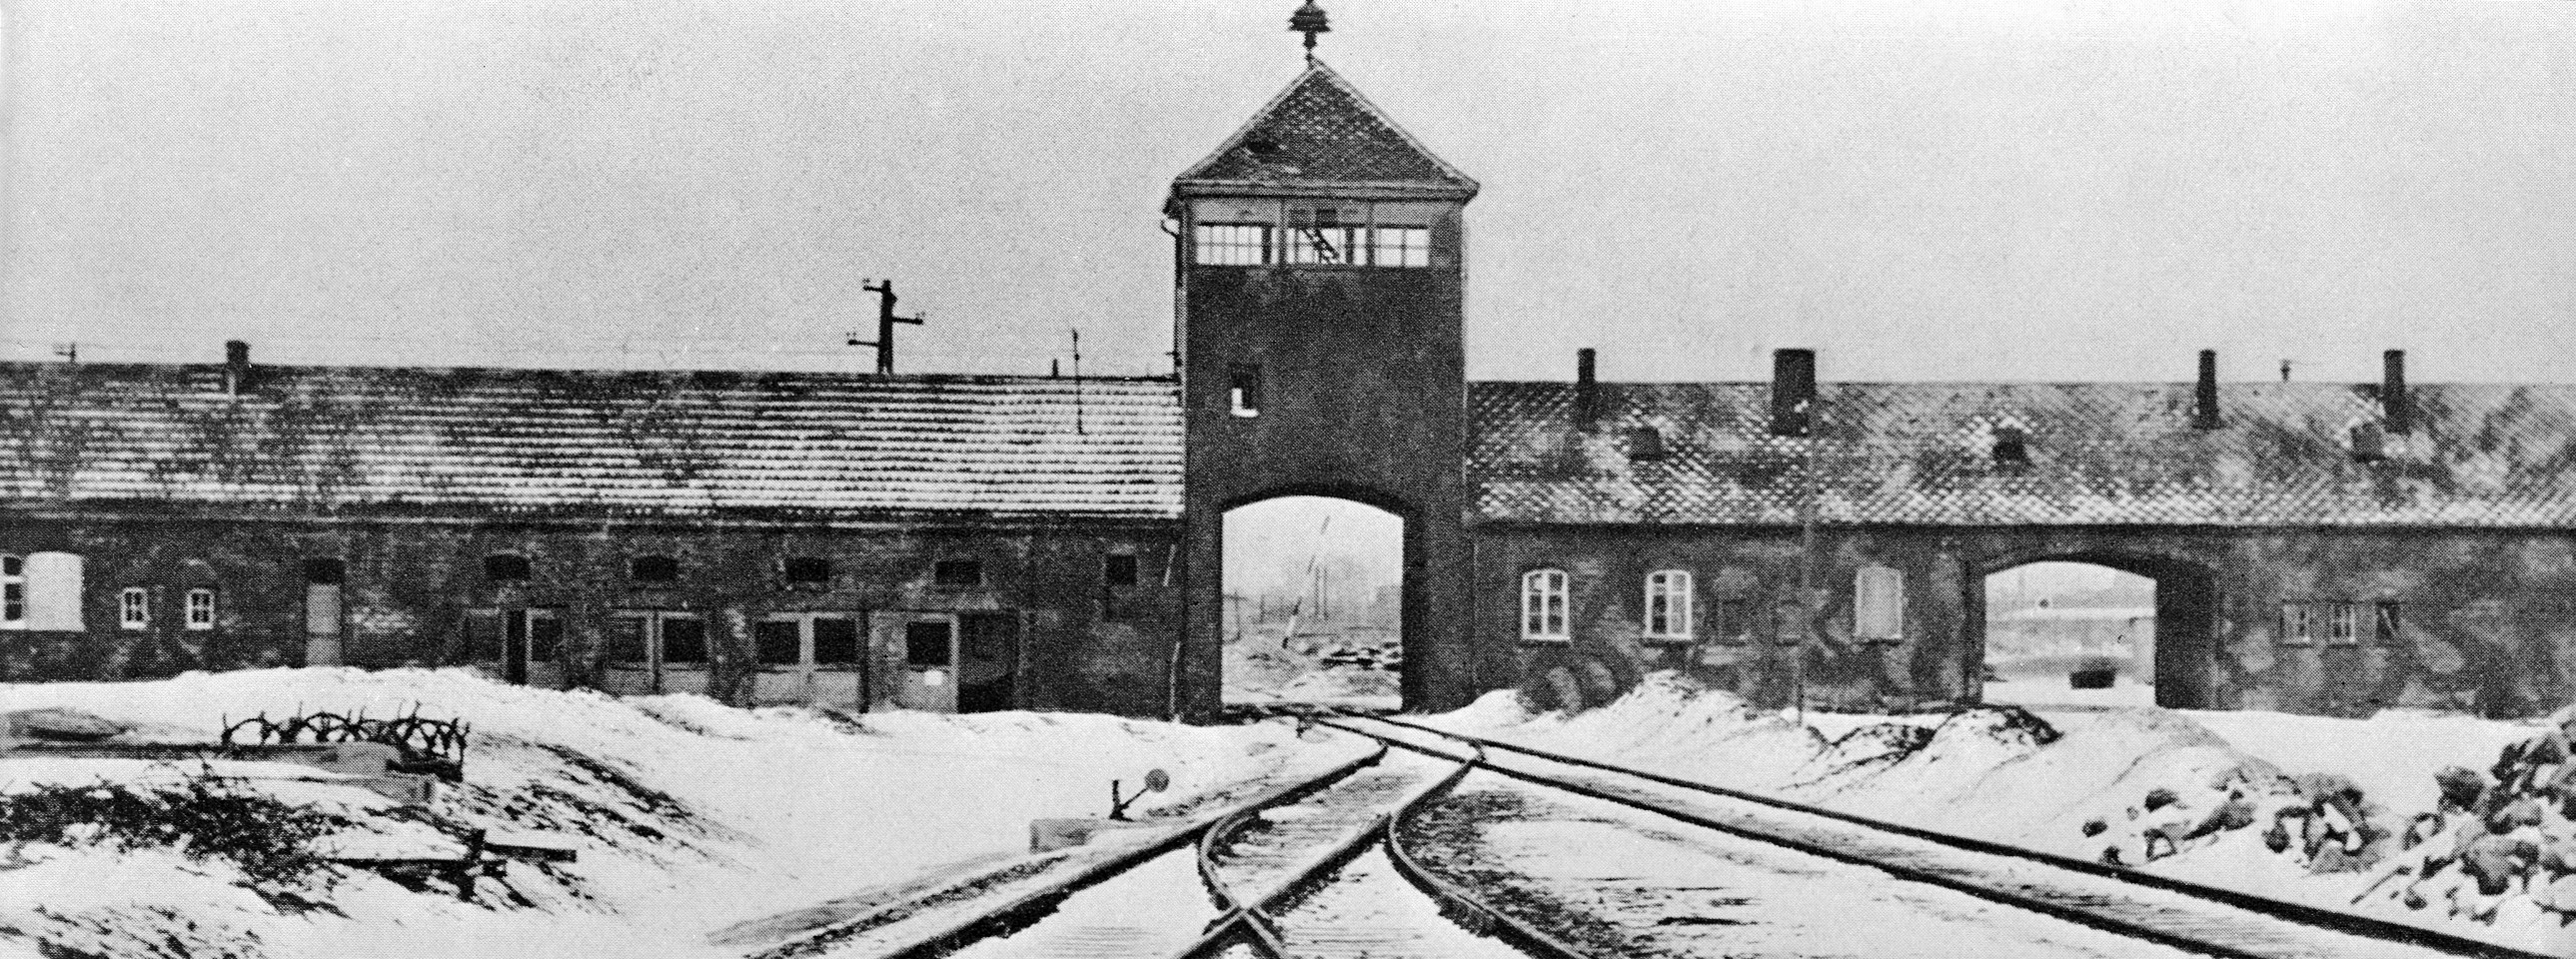 (Original Caption) Entrance to the German concentration camp of Auschwitz-Birkenau in Poland. Undated B/W photograph.